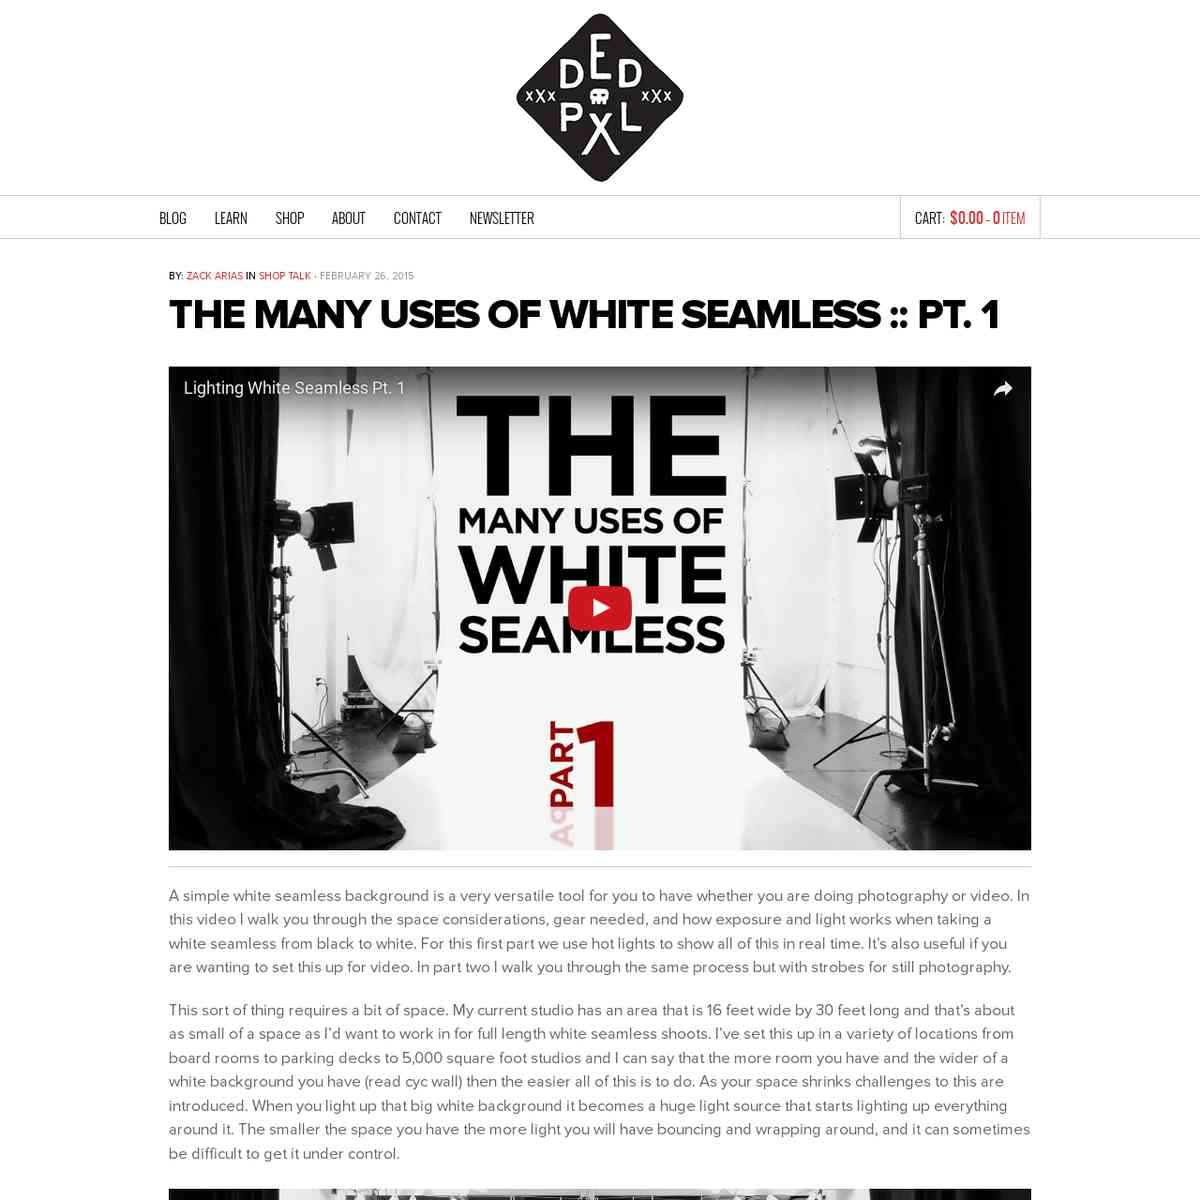 The Many Uses of White Seamless :: Pt. 1 · DEDPXL